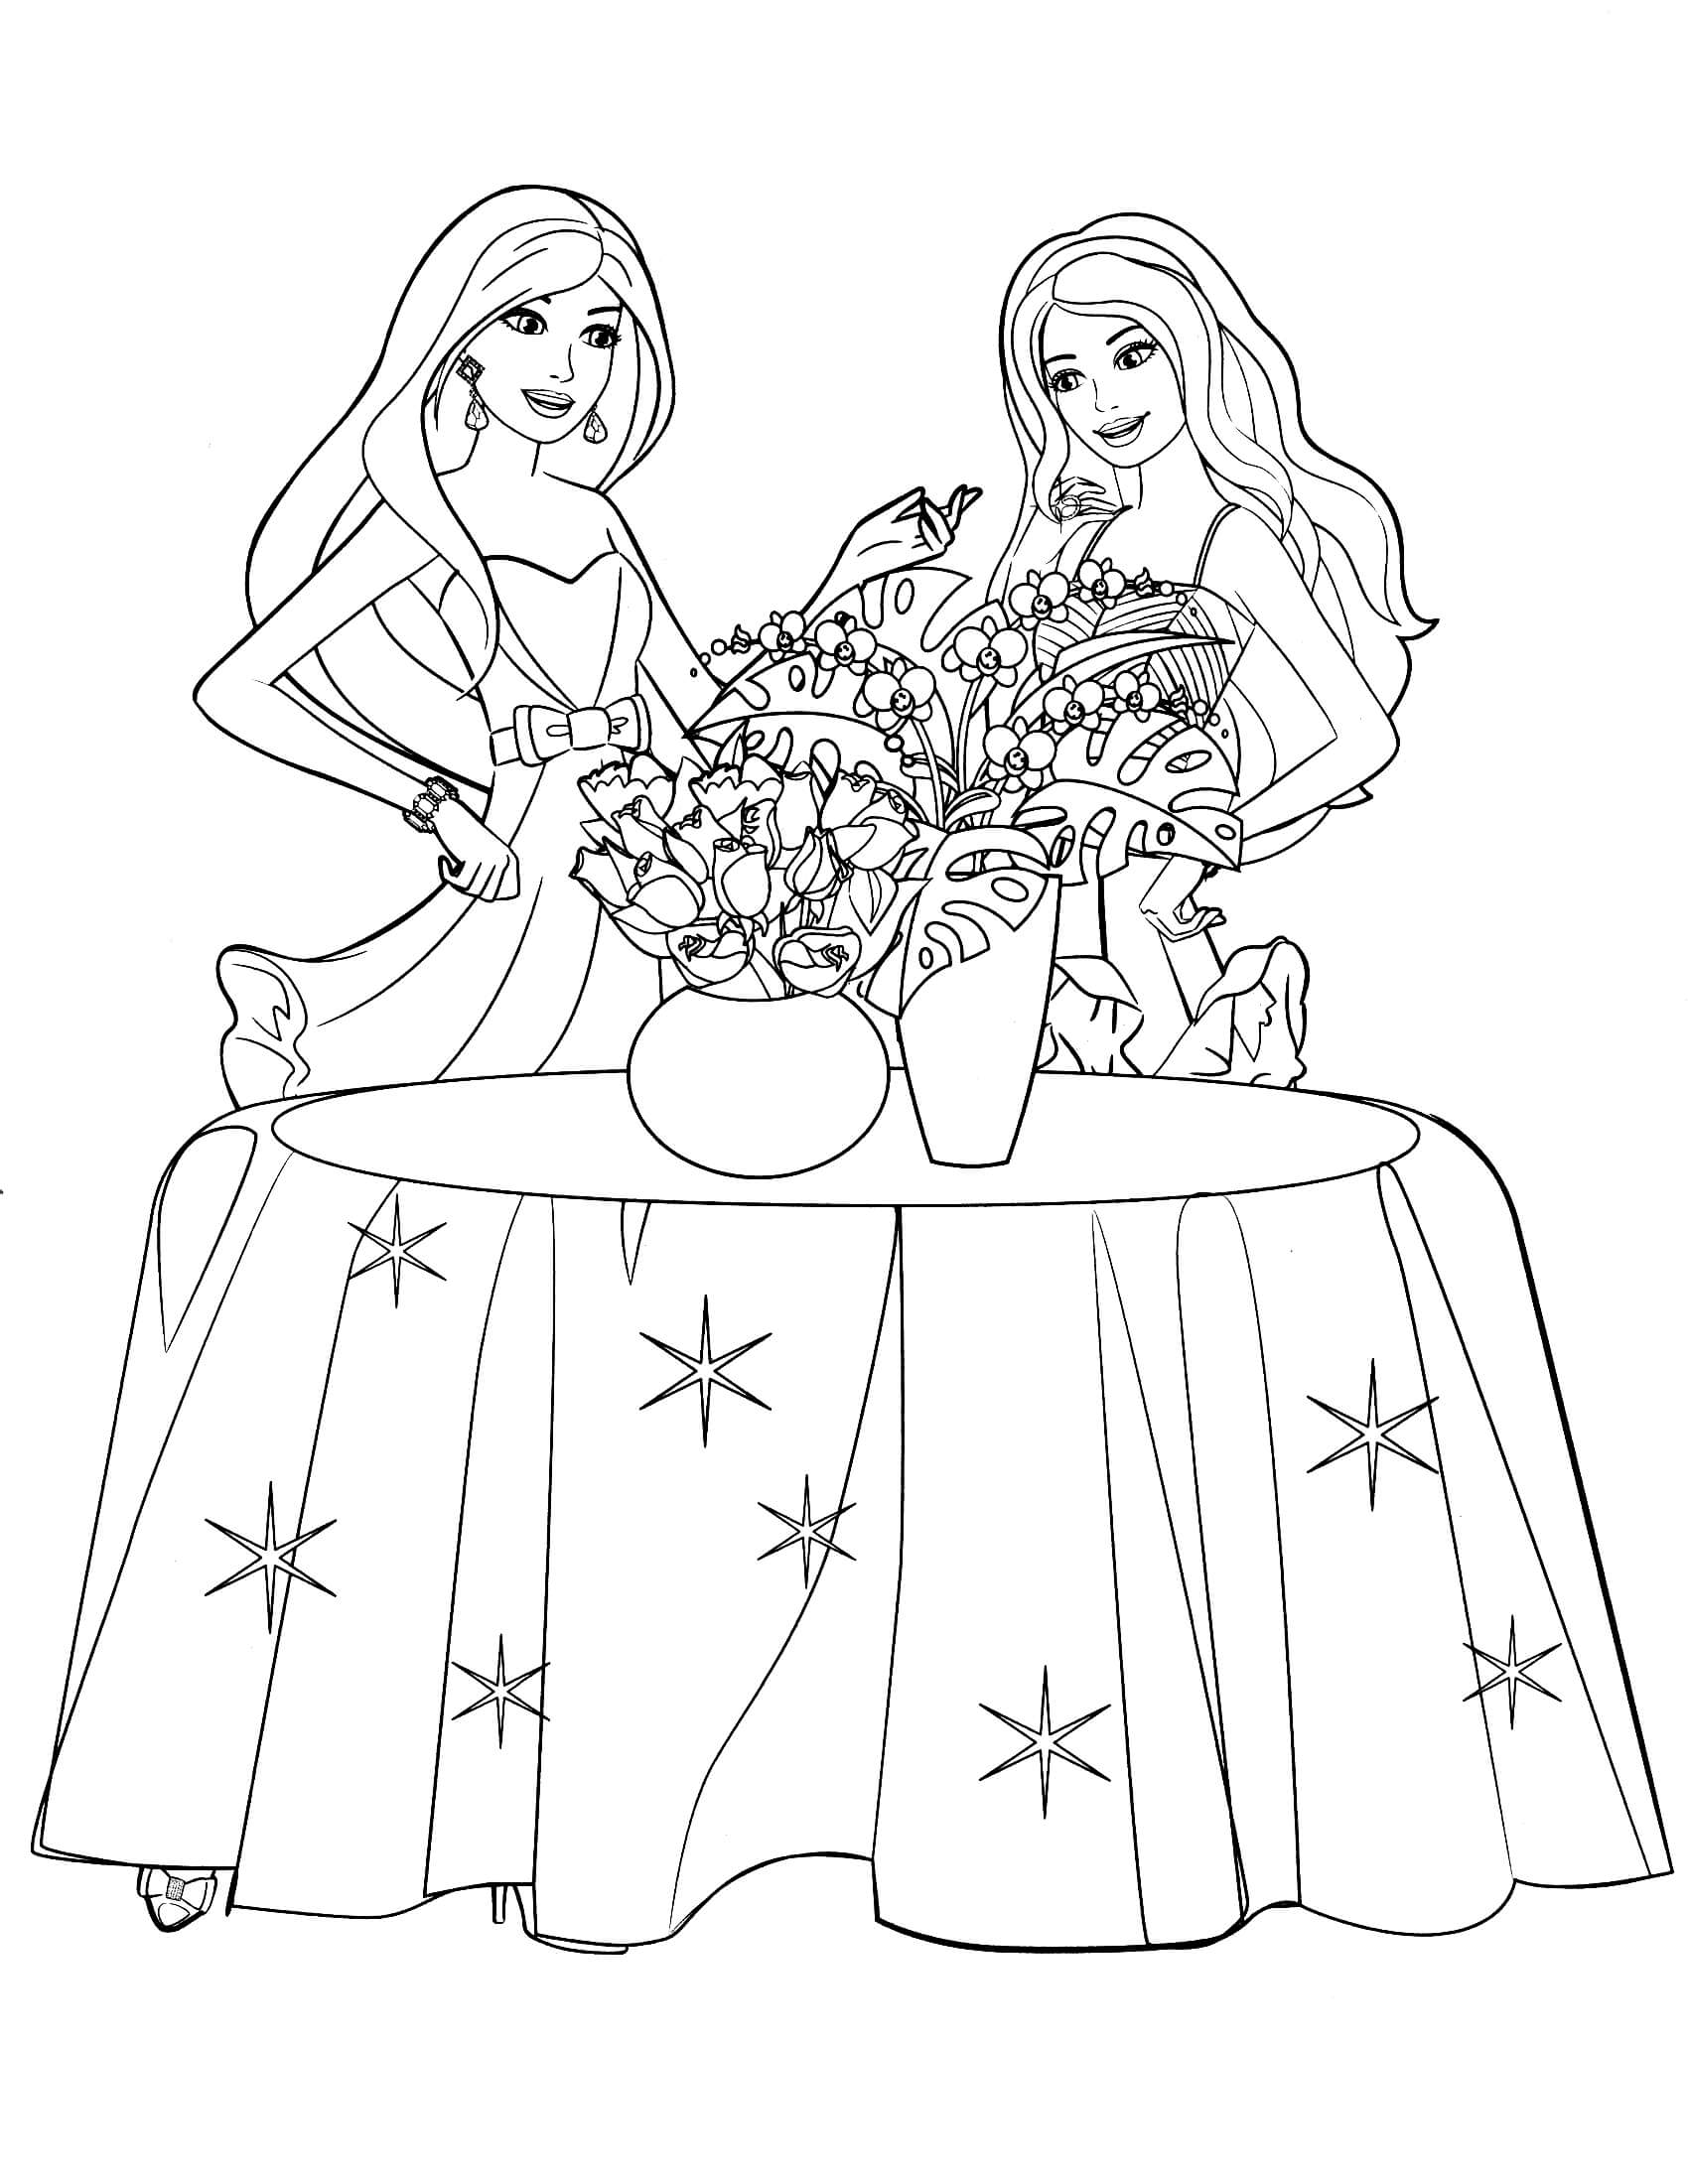 barbie car coloring pages barbie 8 cartoons coloring pages coloring page book for pages coloring car barbie